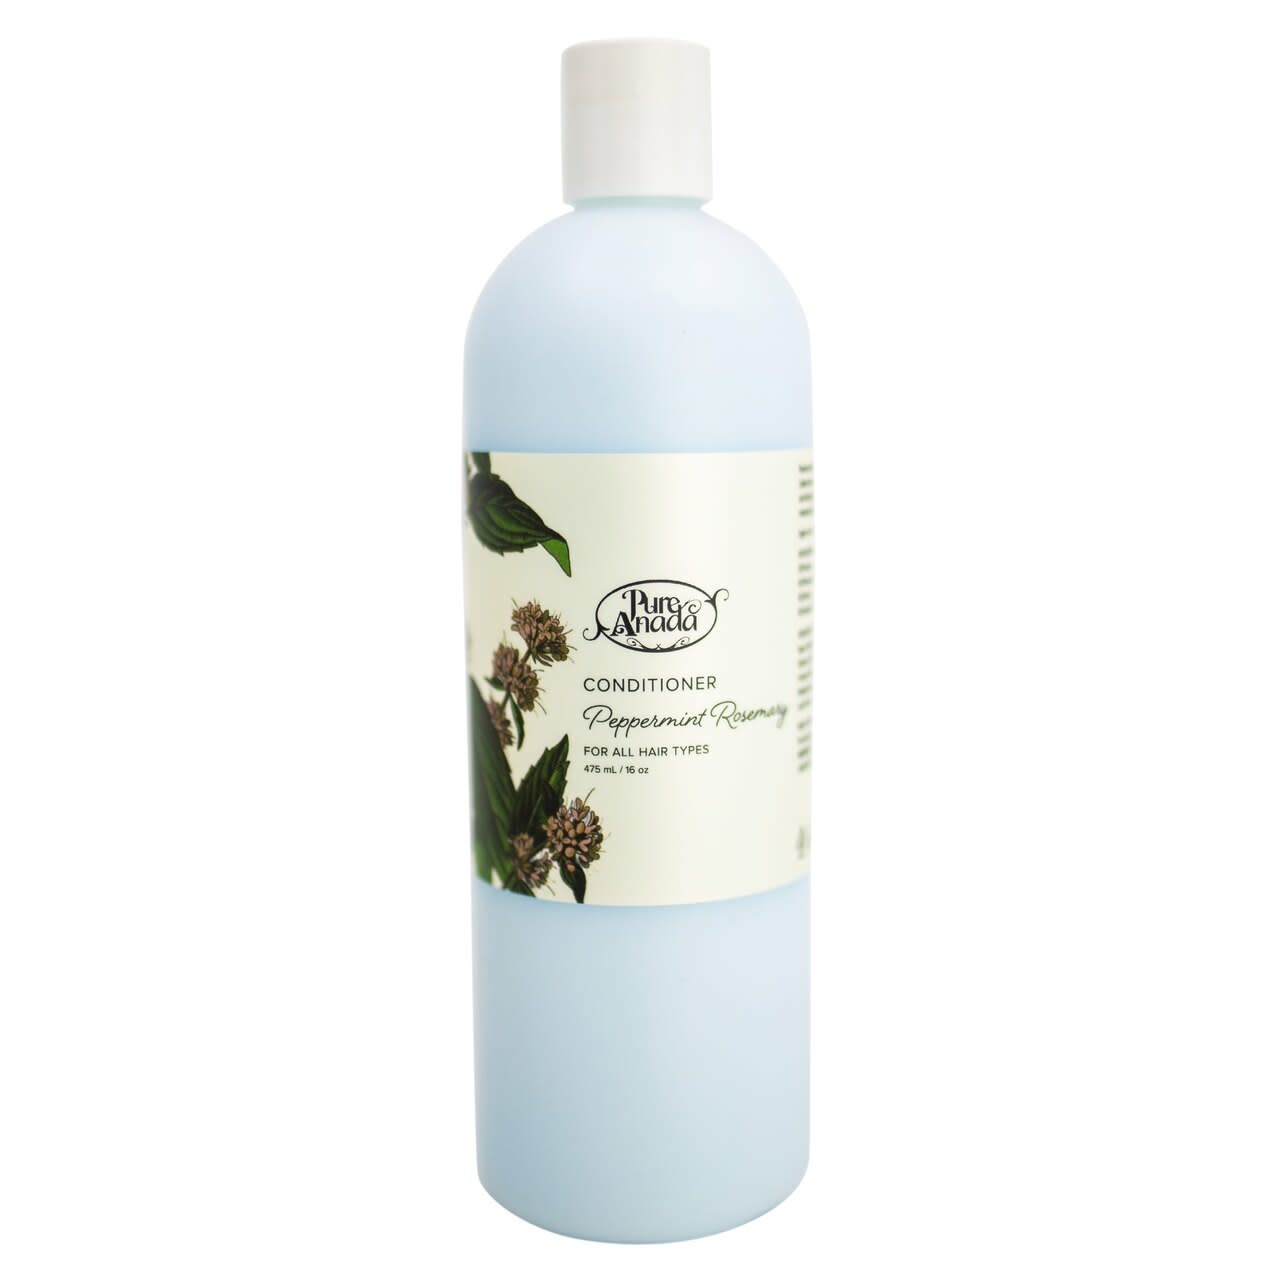 Conditioner - Peppermint Rosemary-1